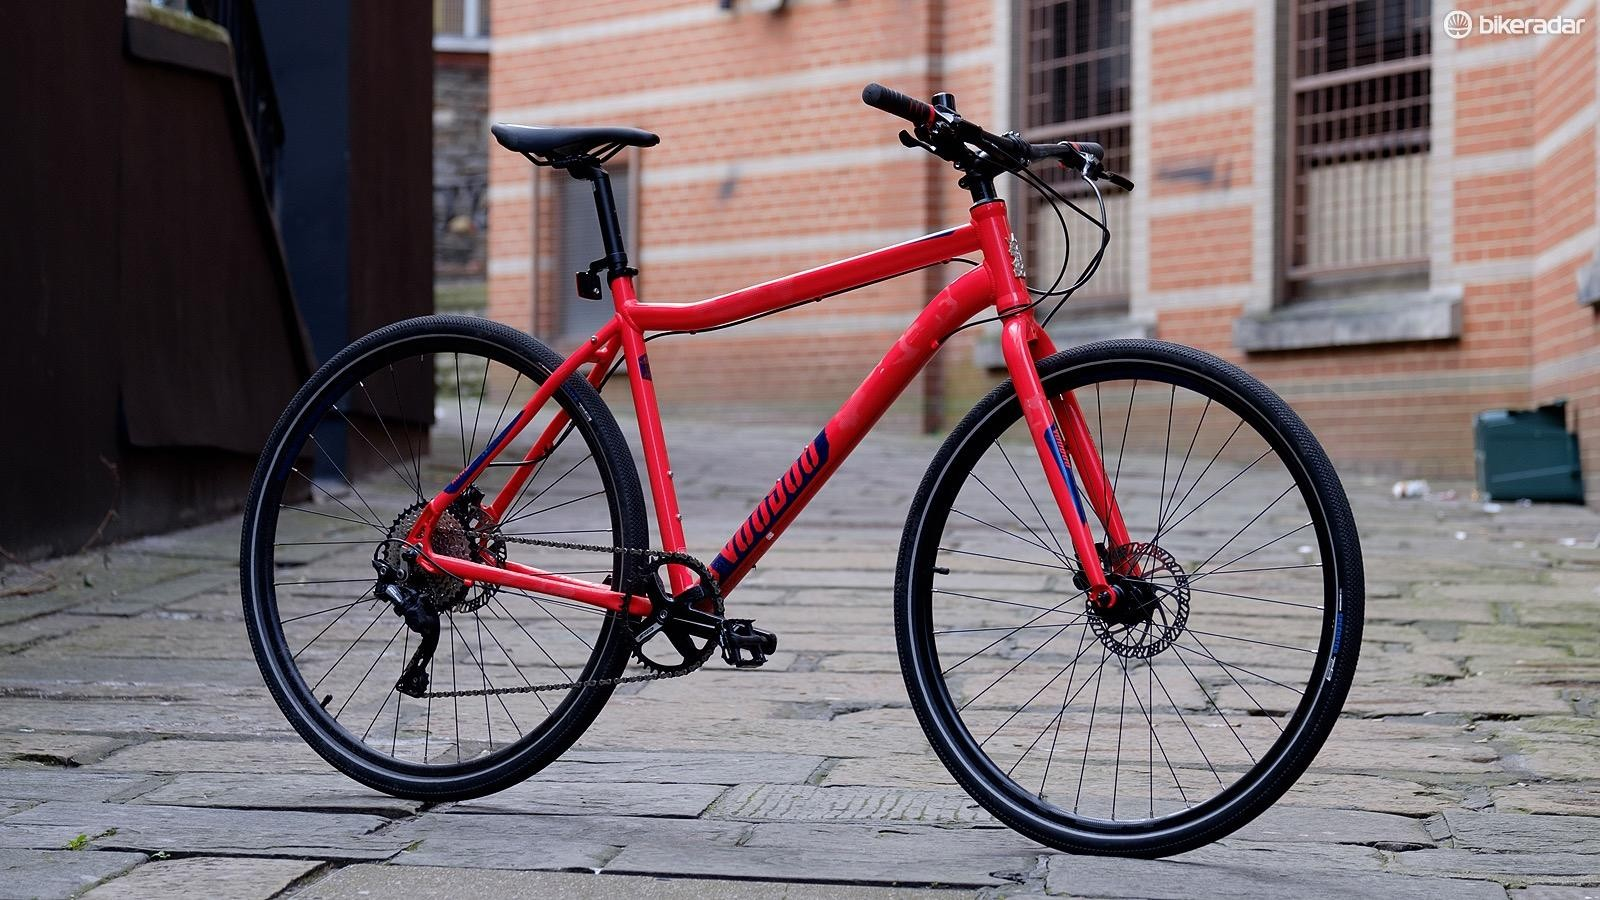 The Agwe is Voodoo's latest urban commuter